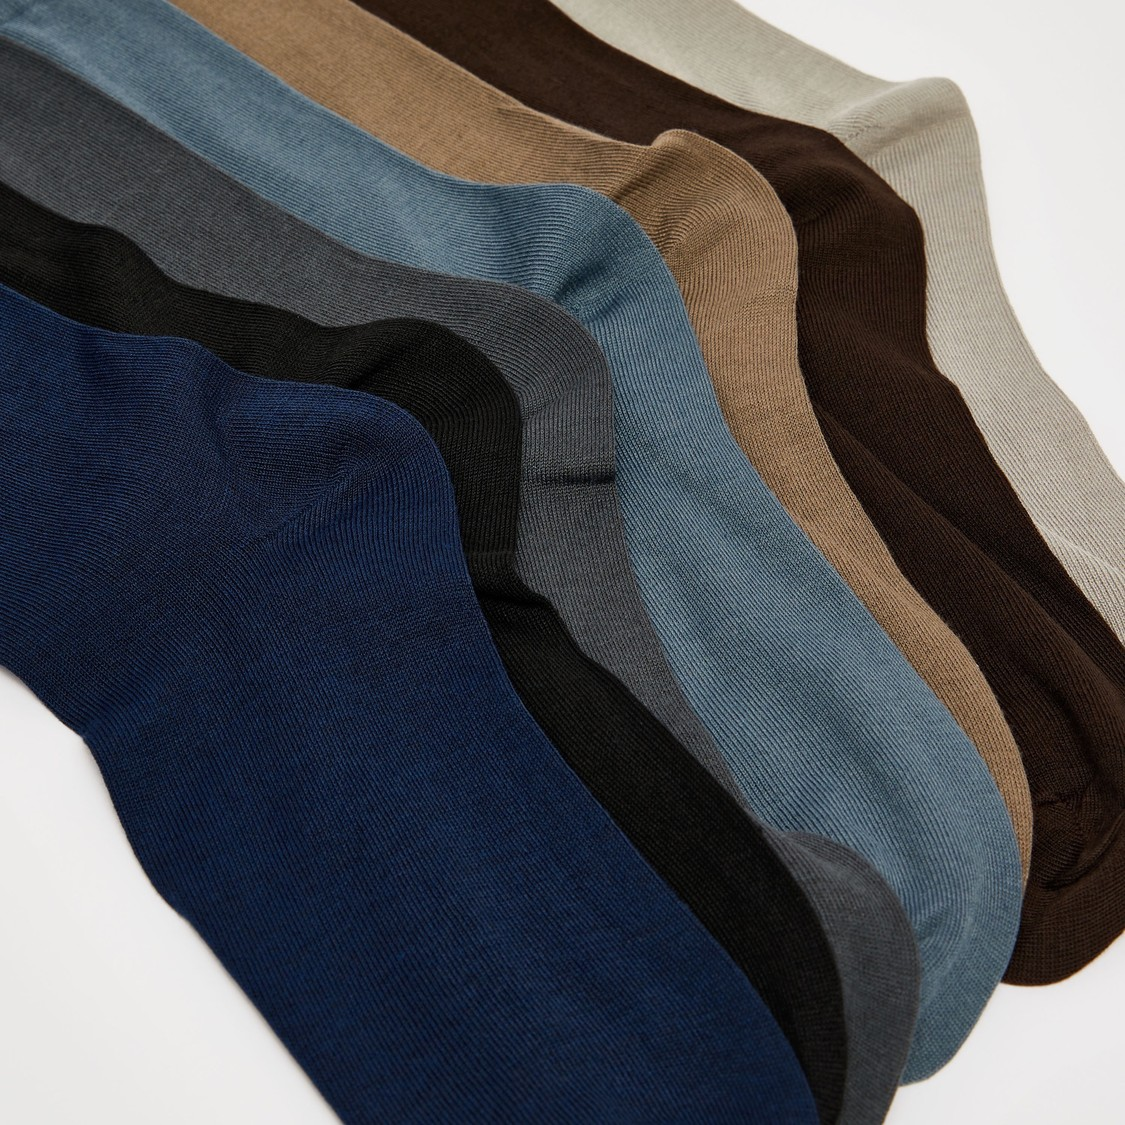 Pack of 7 - Solid Crew Length Socks with Cuffed Hem